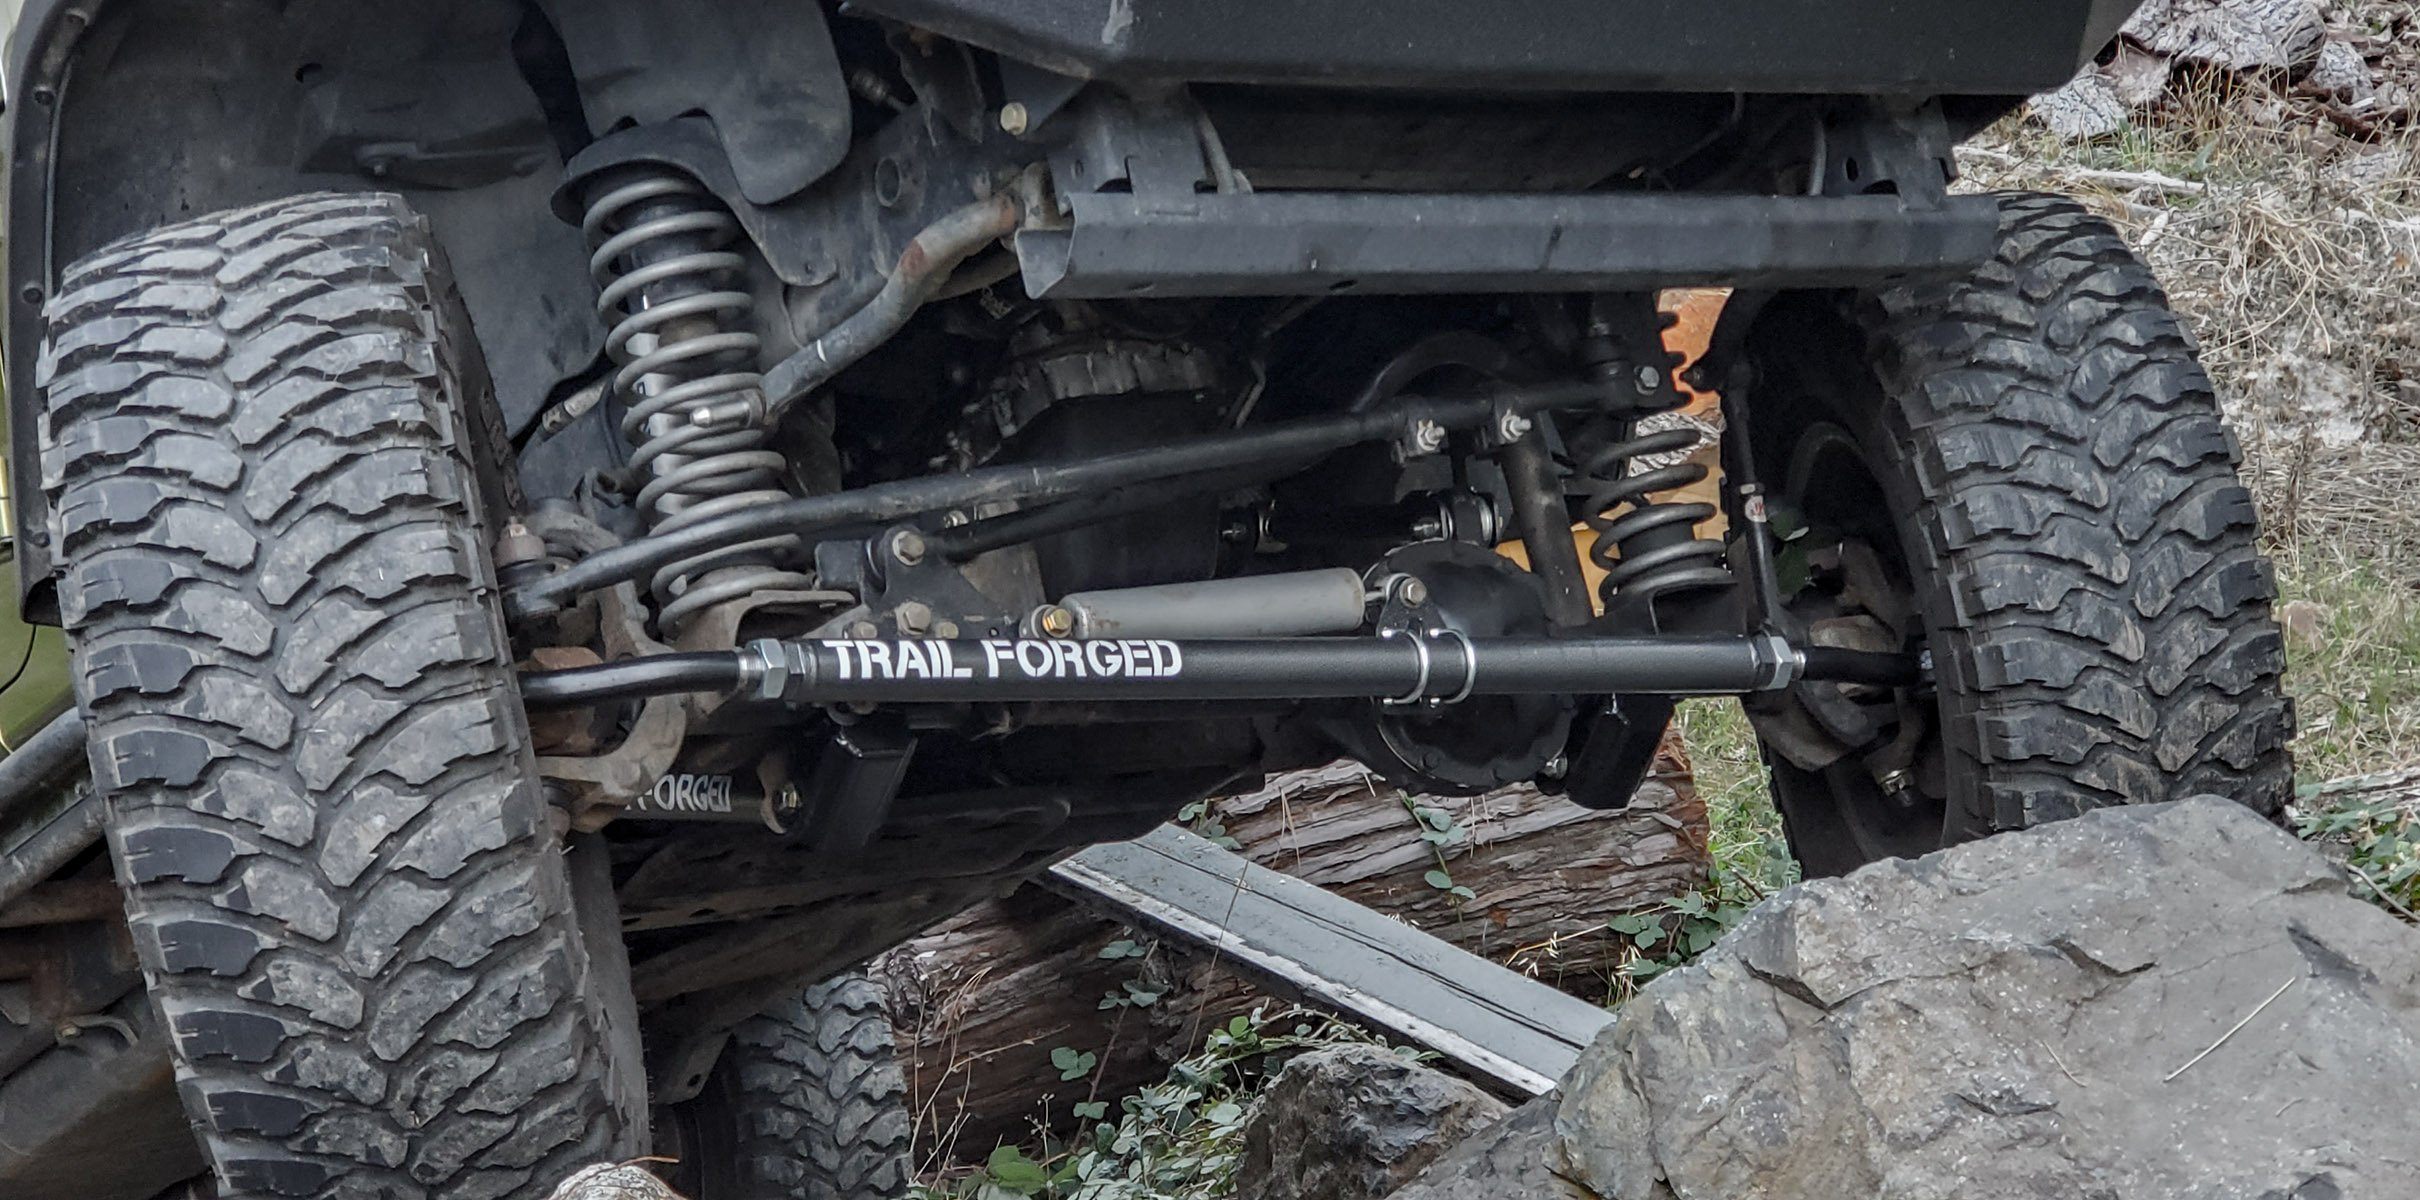 Trail Forged JK 2.5 Ton Tie Rod